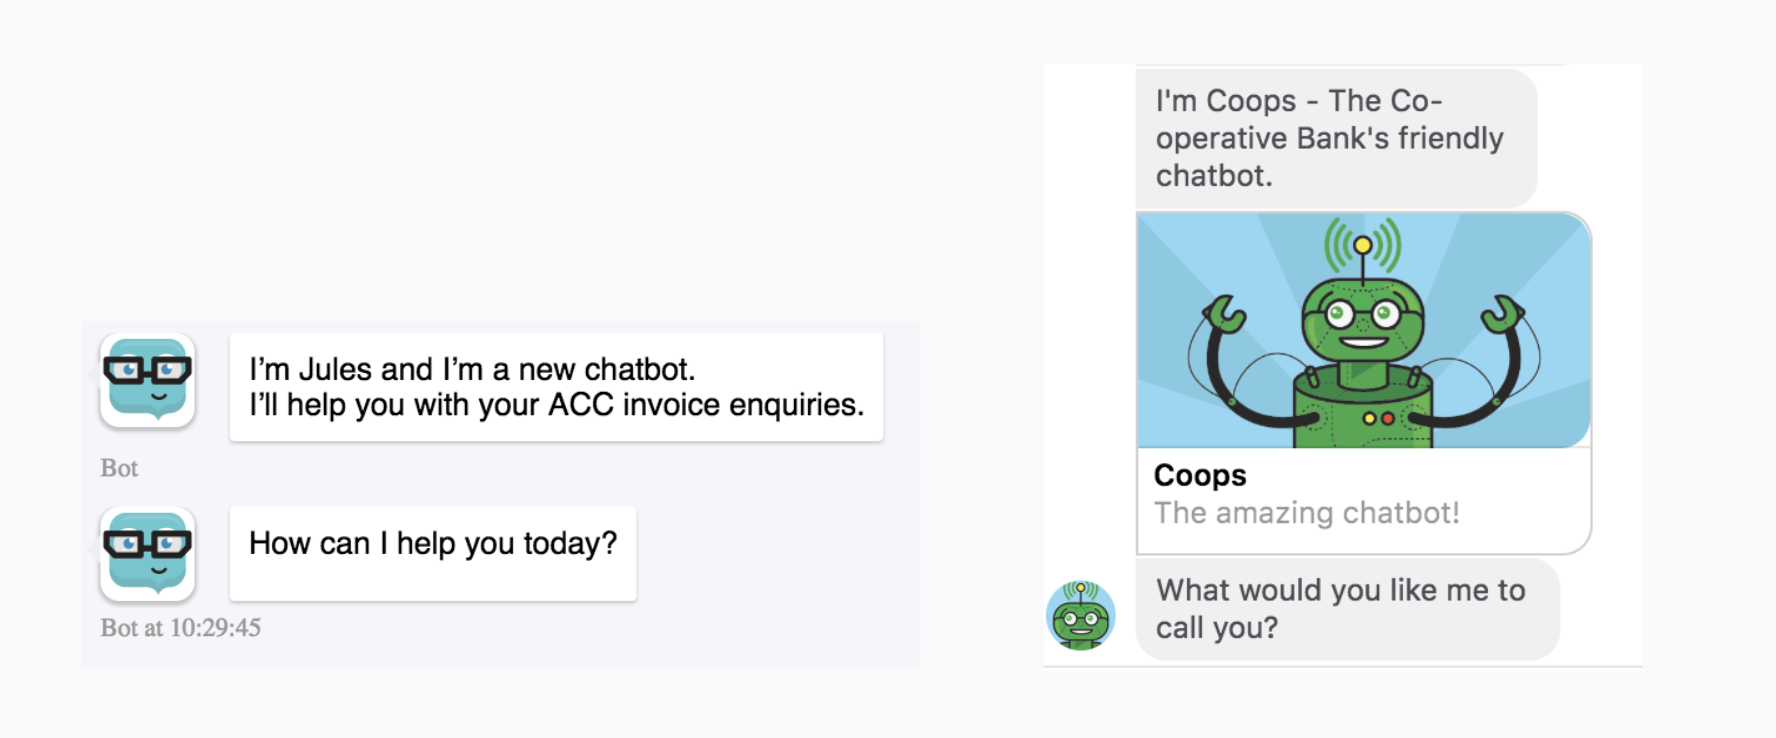 Be honest with your audience: Make it clear that your chatbot is a not a real human.